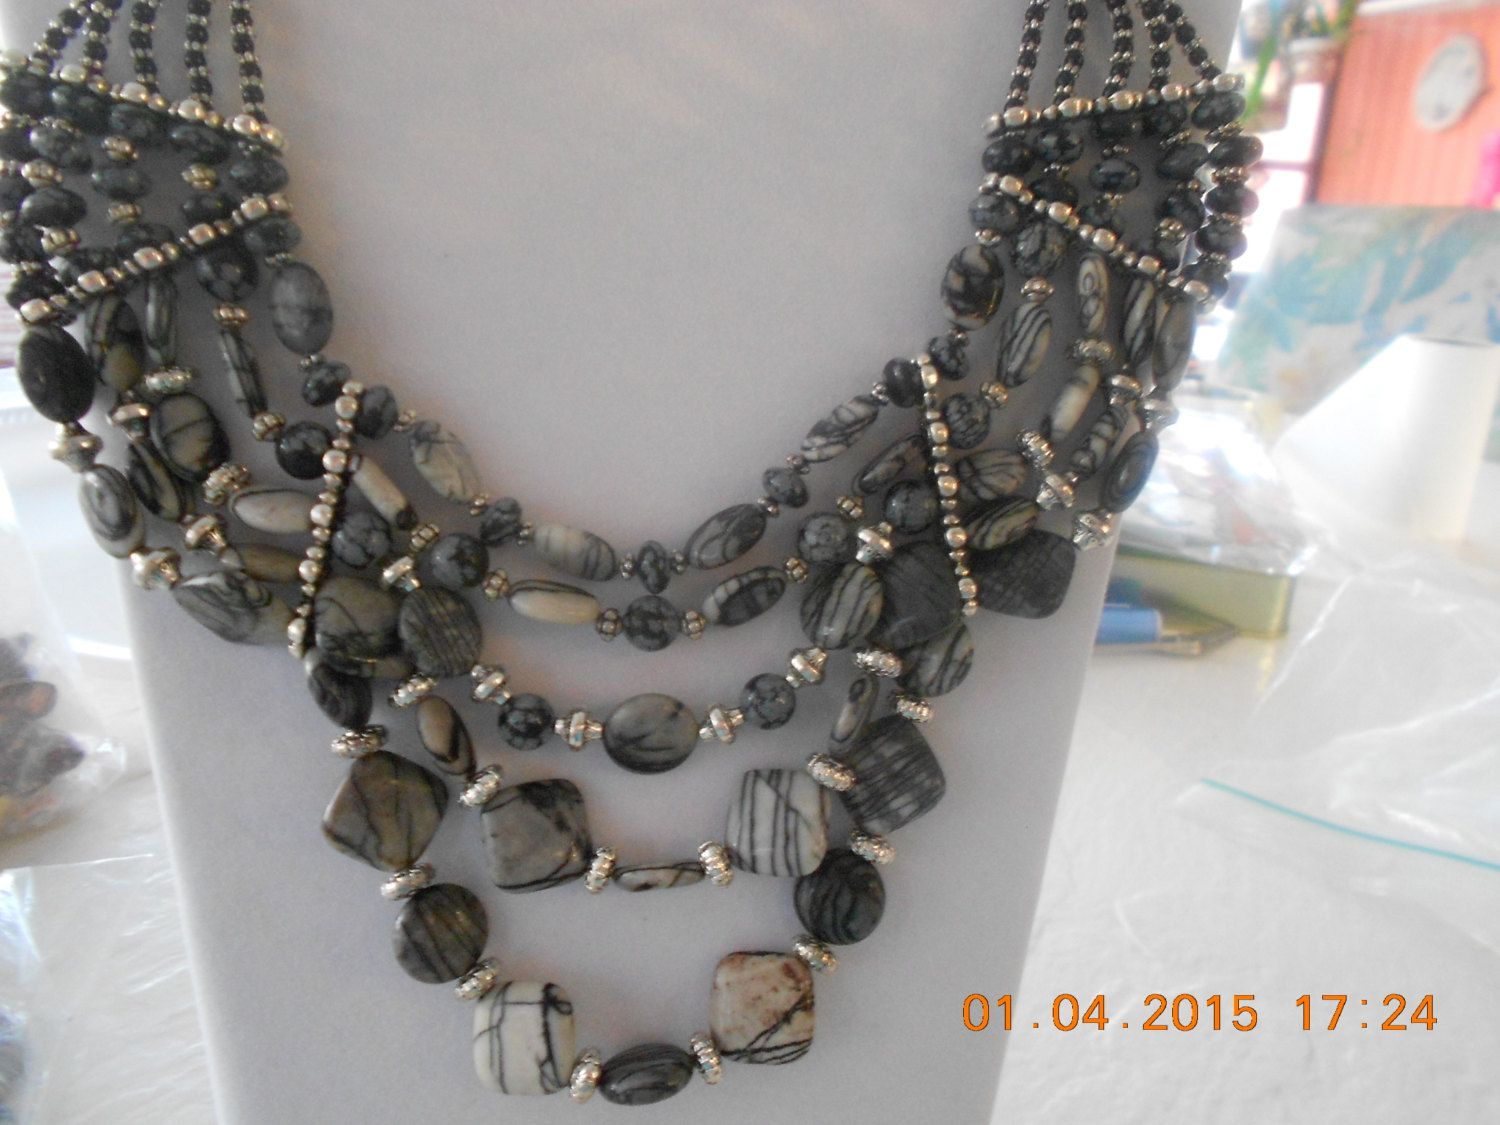 Statement Piece.Black and White Jasper Multiple shaped and Sized  beads mixed with metal components Exquisite Neclace set by Mewpcrafts on Etsy